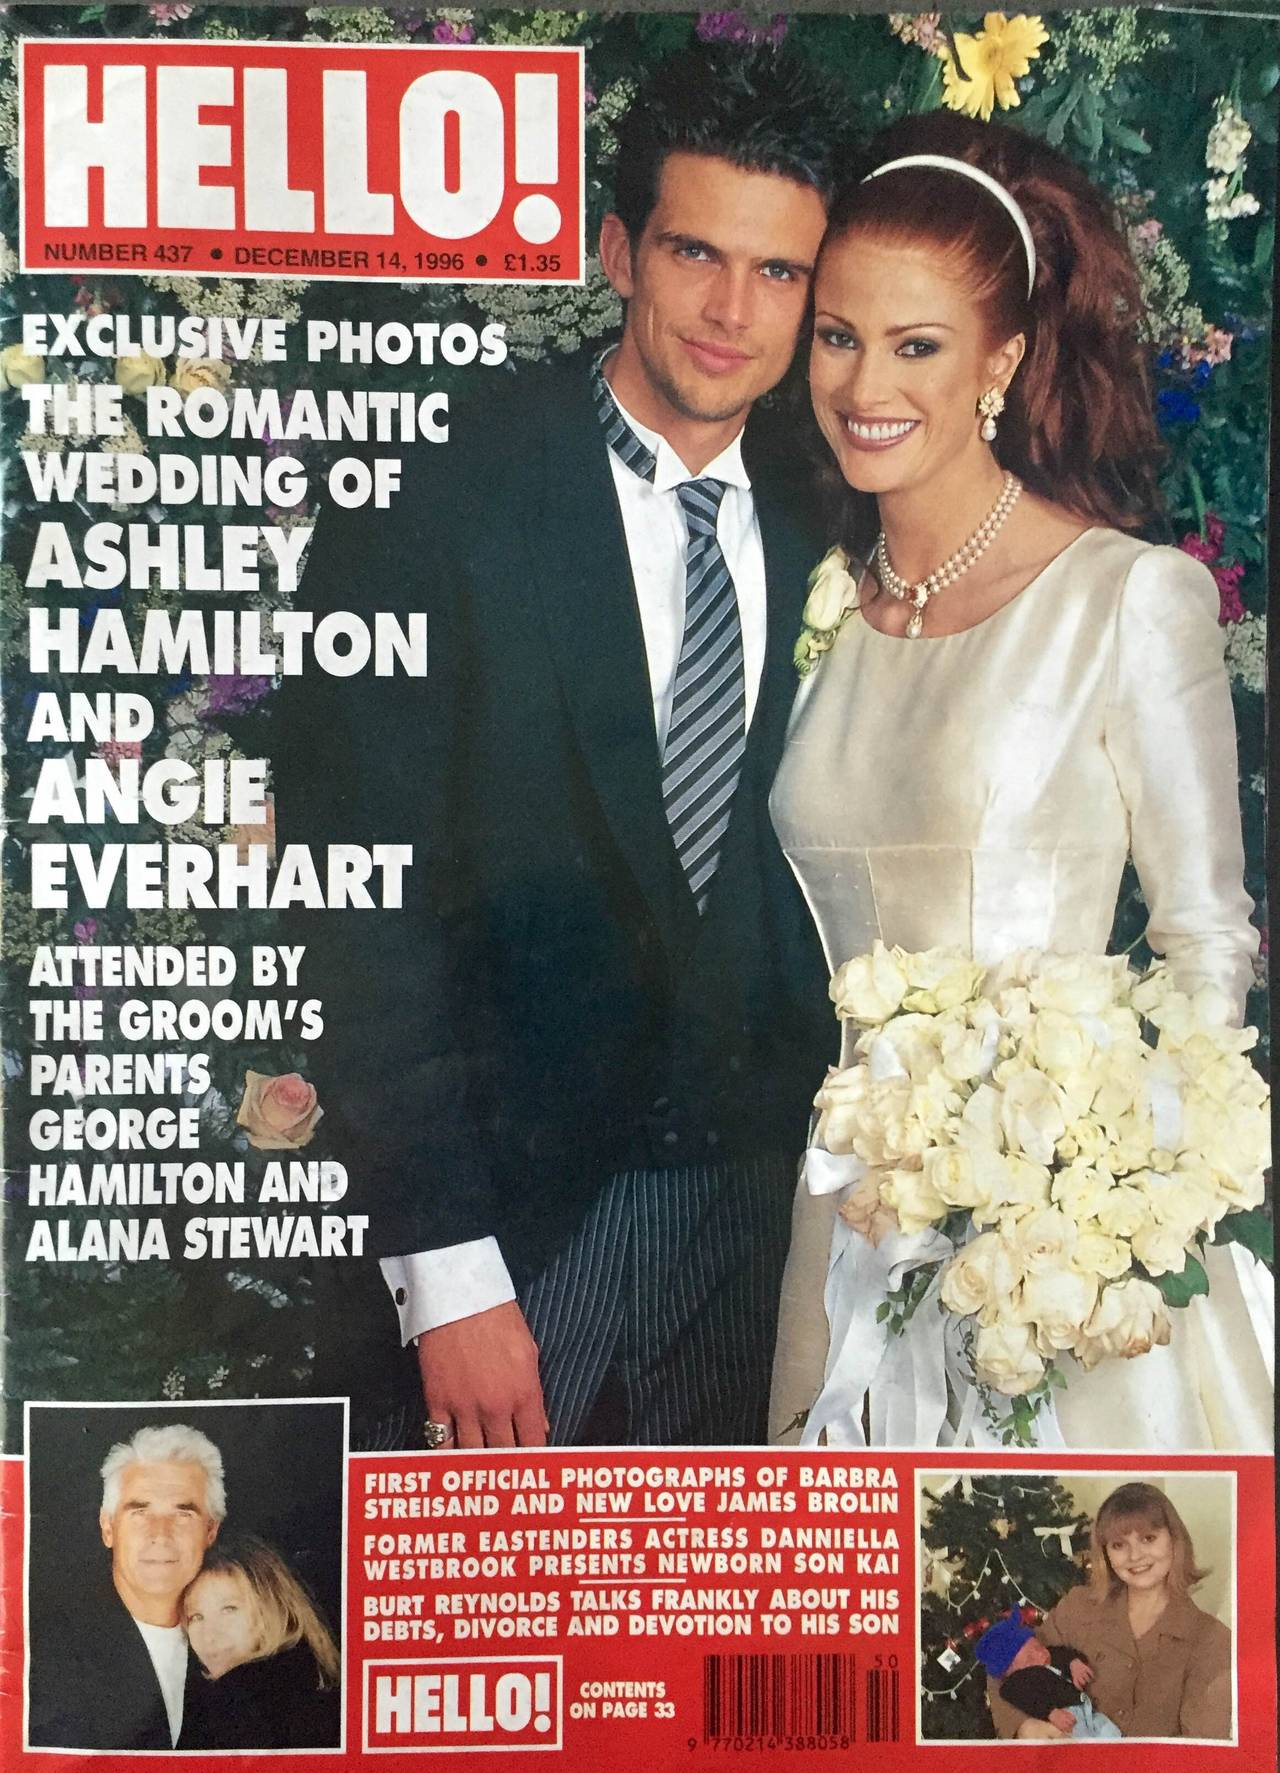 Valentino Haute Couture wedding gown.  Angie Everhart had been a Valentino model in the early 1990s and she commissioned him to create this $70,000.00 spectacular gown for her marriage to Ashley Hamilton. Comes with original sketches.   The